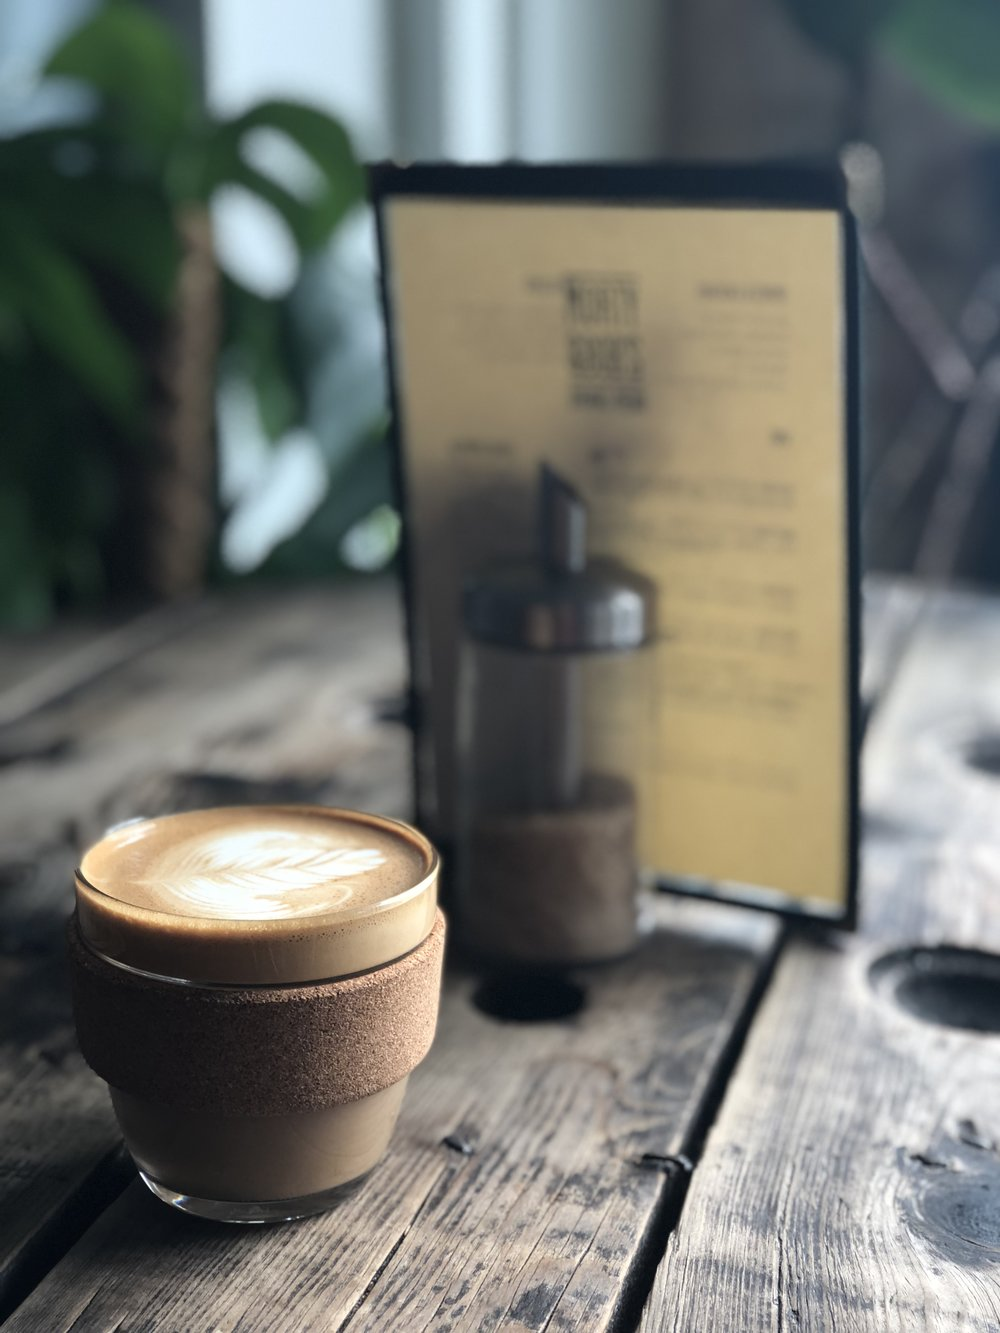 KEEPCUPS - We have some beautiful 8oz and 10oz KeepCups available to purchase in the cafe. We are so keen to get people to start using reusable cups we're even offering a free coffee when you buy one